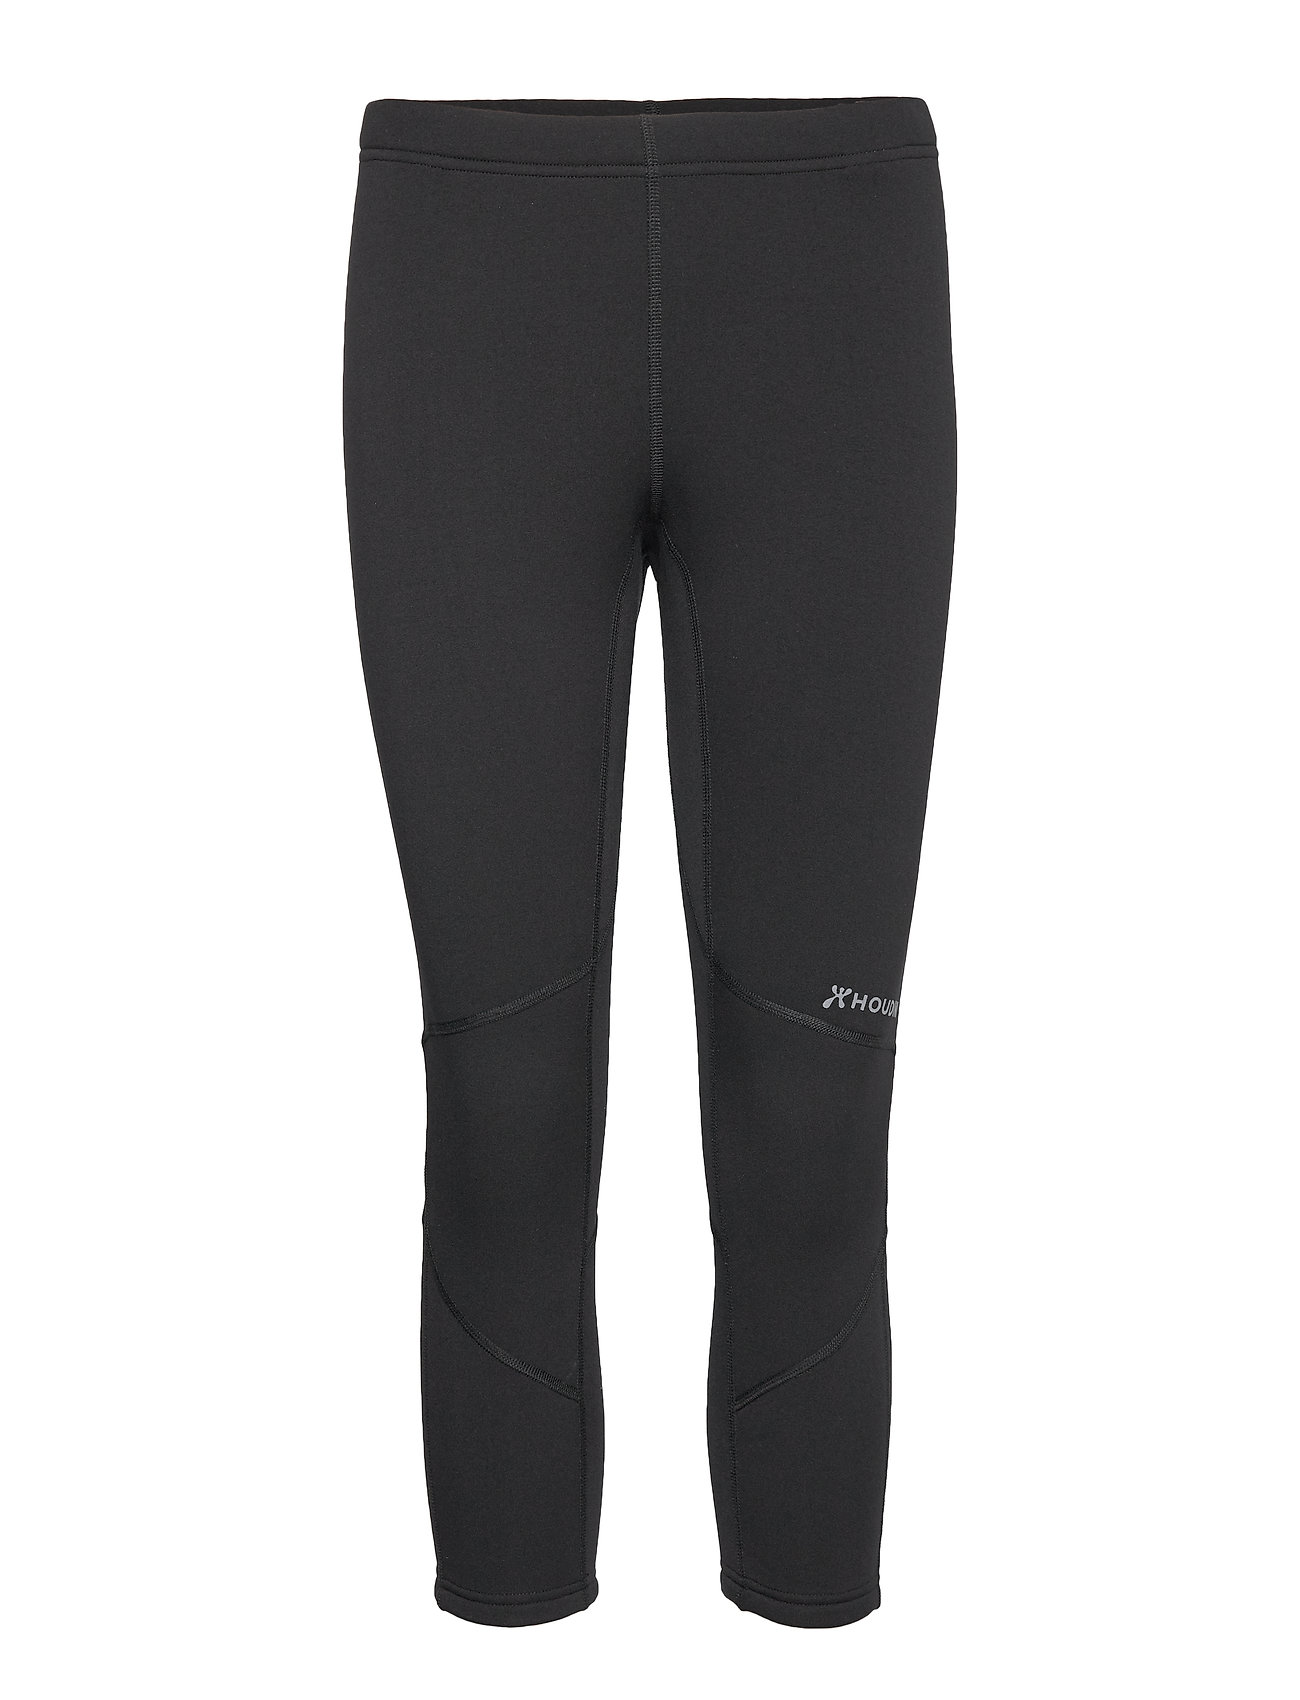 Houdini W's Drop Knee Power Tights - TRUE BLACK